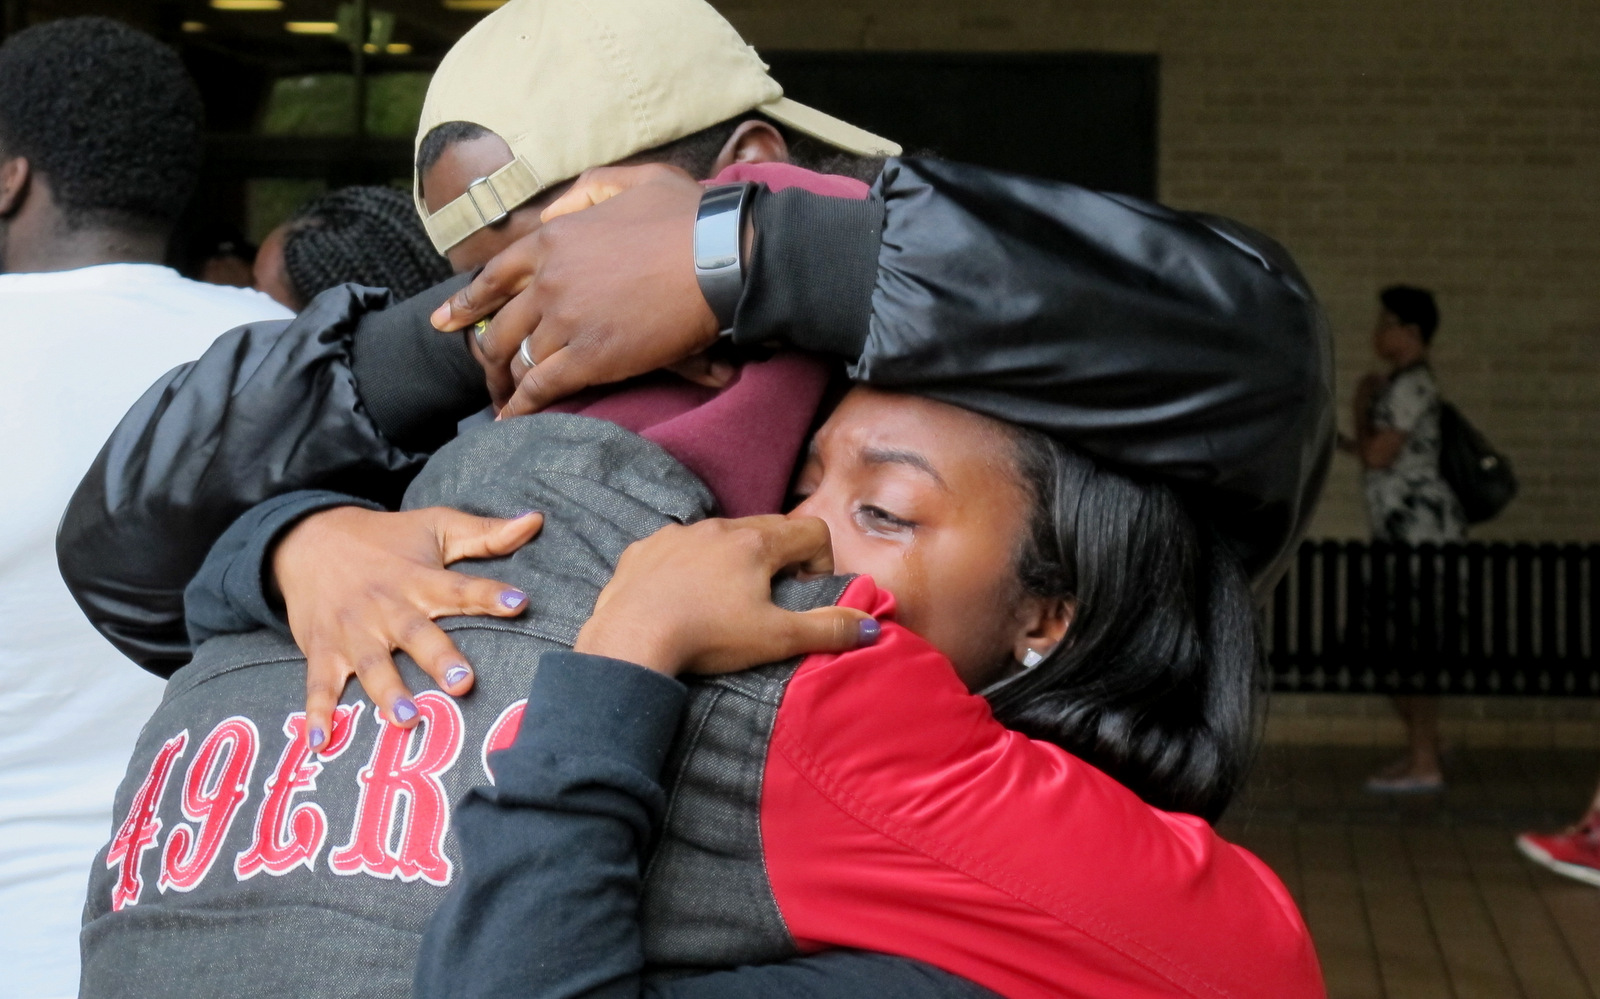 Mourners embrace at a vigil for Richard Collins III, who was stabbed to death in College Park, Maryland. (AP/Brian Witte)